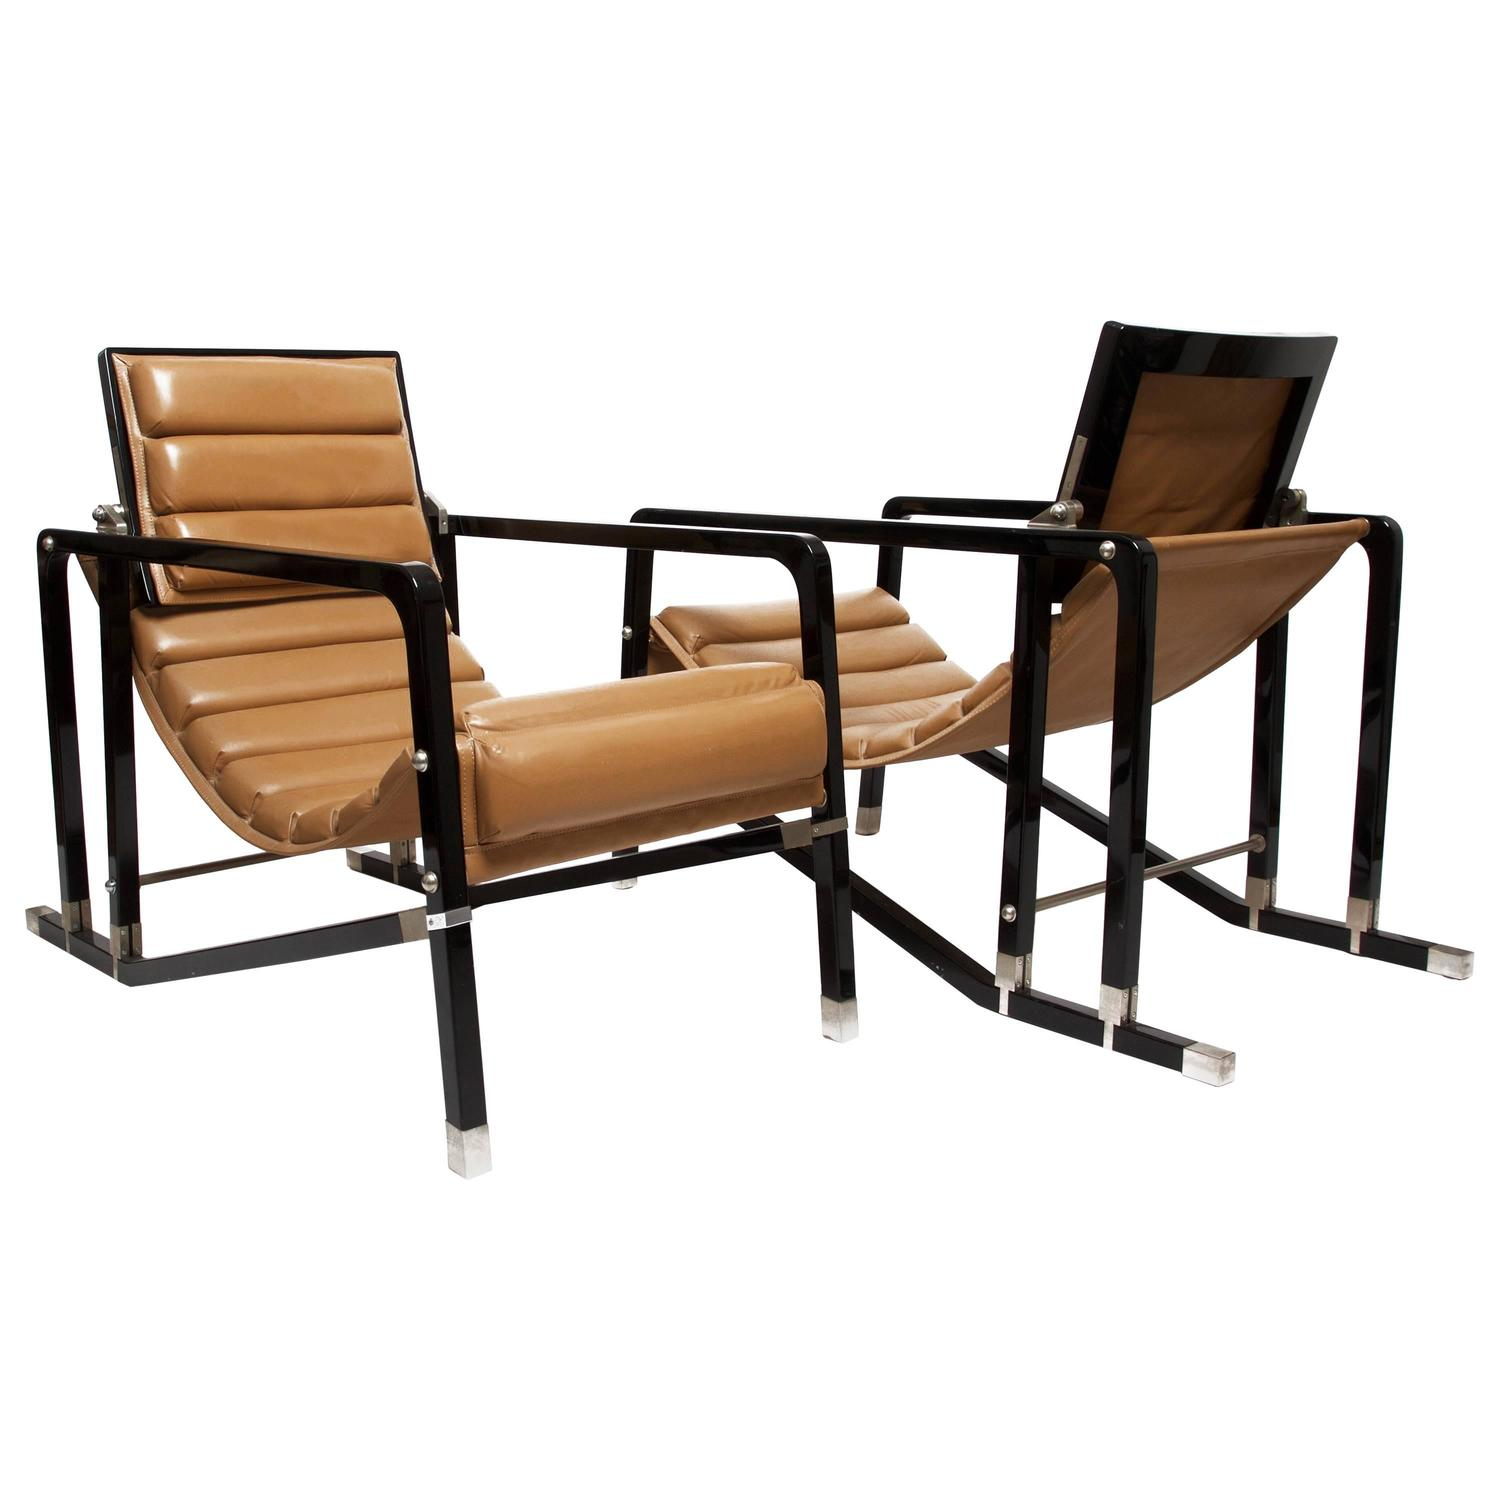 Eileen gray pair of transat chairs by andr e putman - Chaise longue transat ...